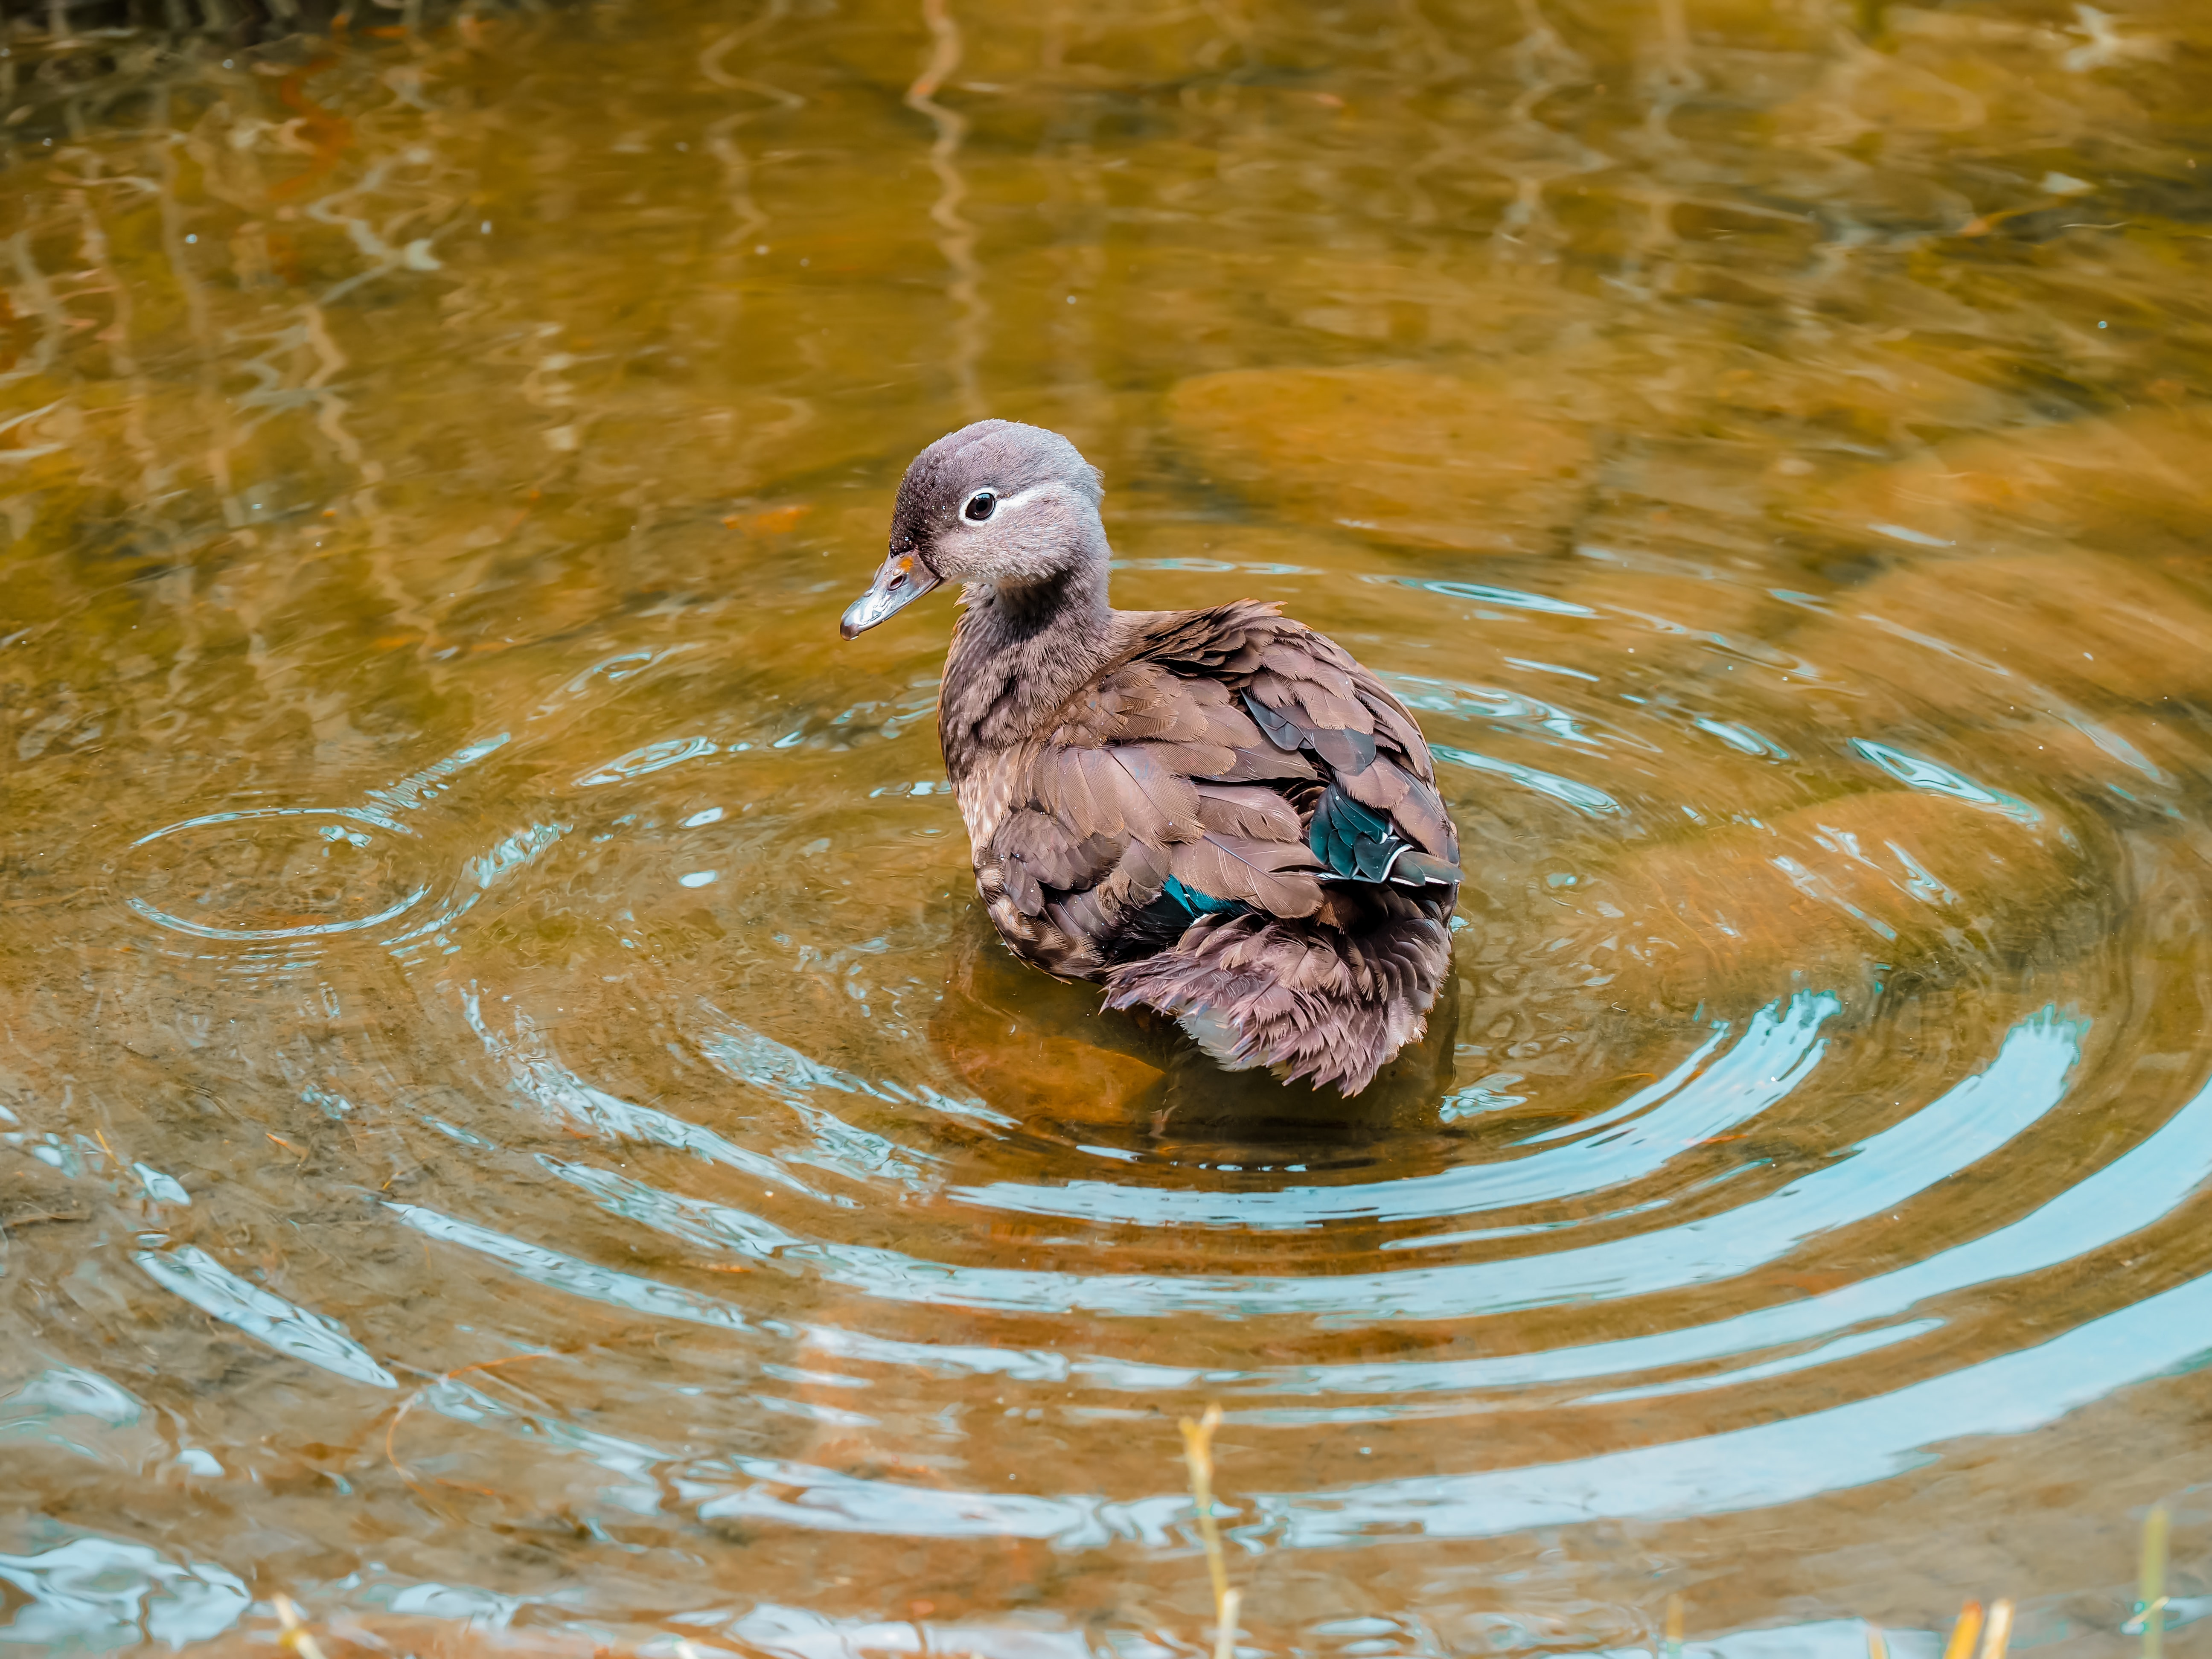 brown duck on body of water at daytime